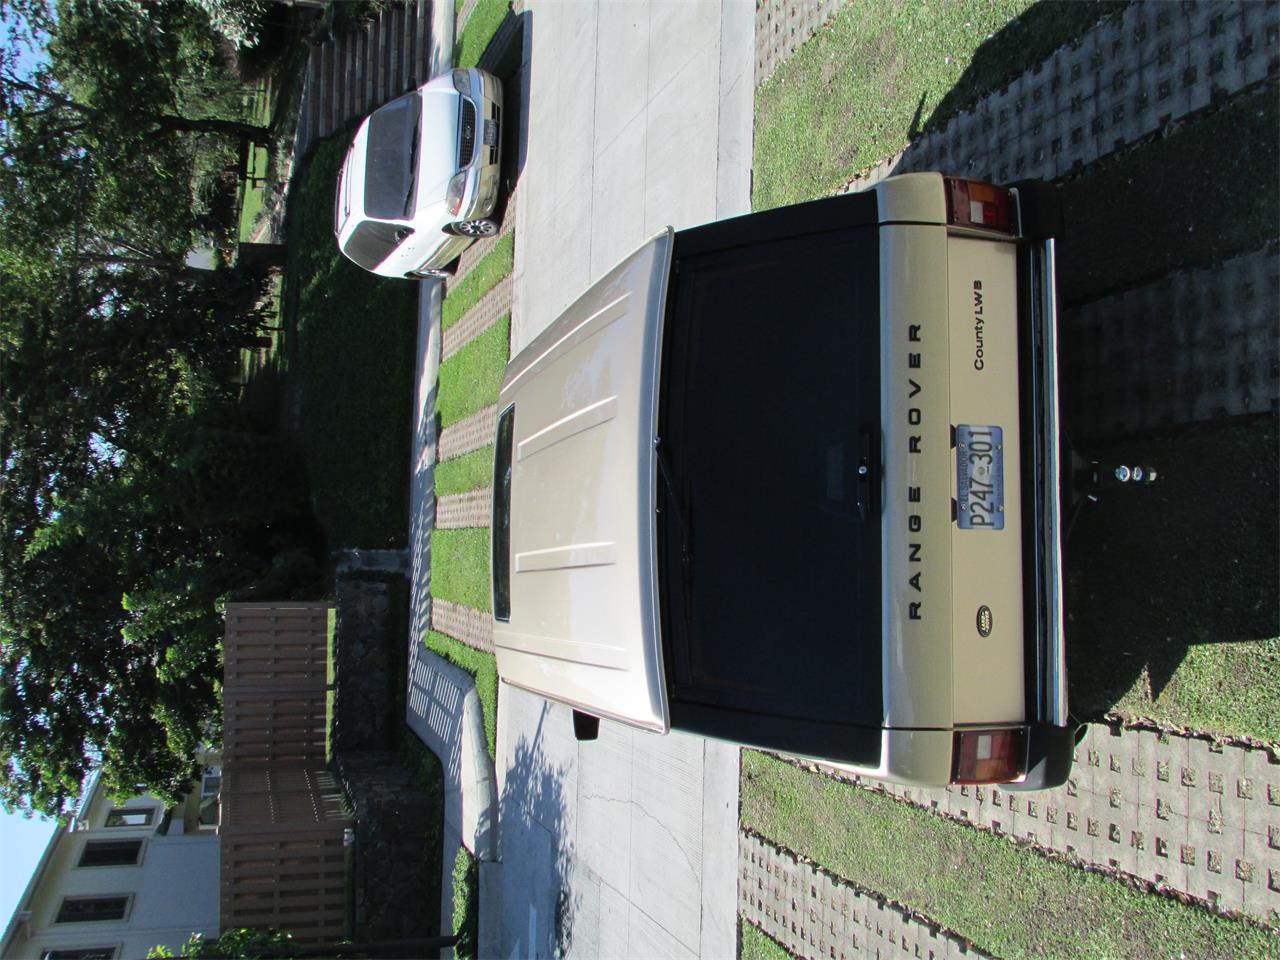 Large Picture of '93 Land Rover Range Rover located in San Salvador - $19,500.00 Offered by a Private Seller - GELK